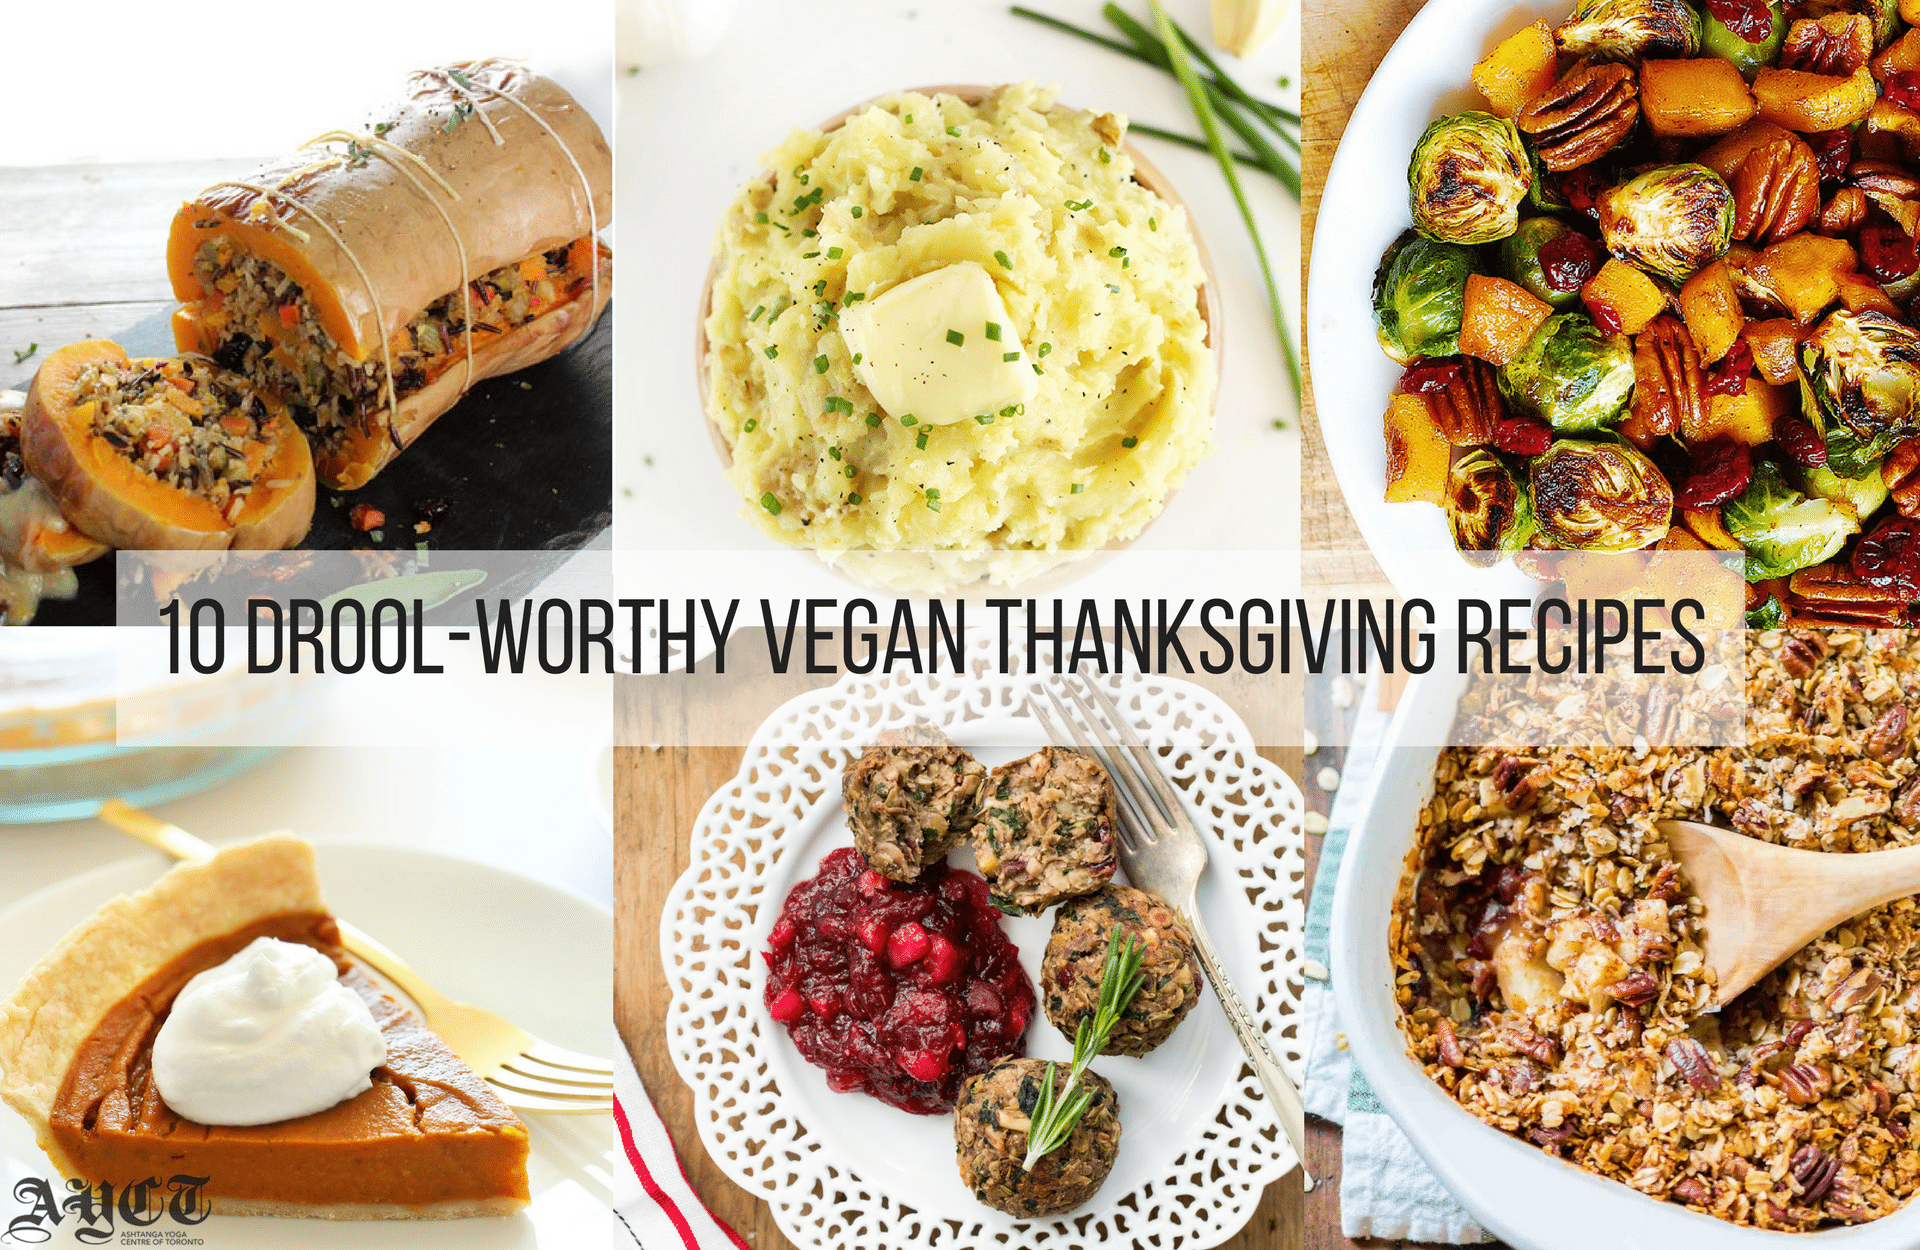 10 Drool-Worthy Vegan Thanksgiving Recipes